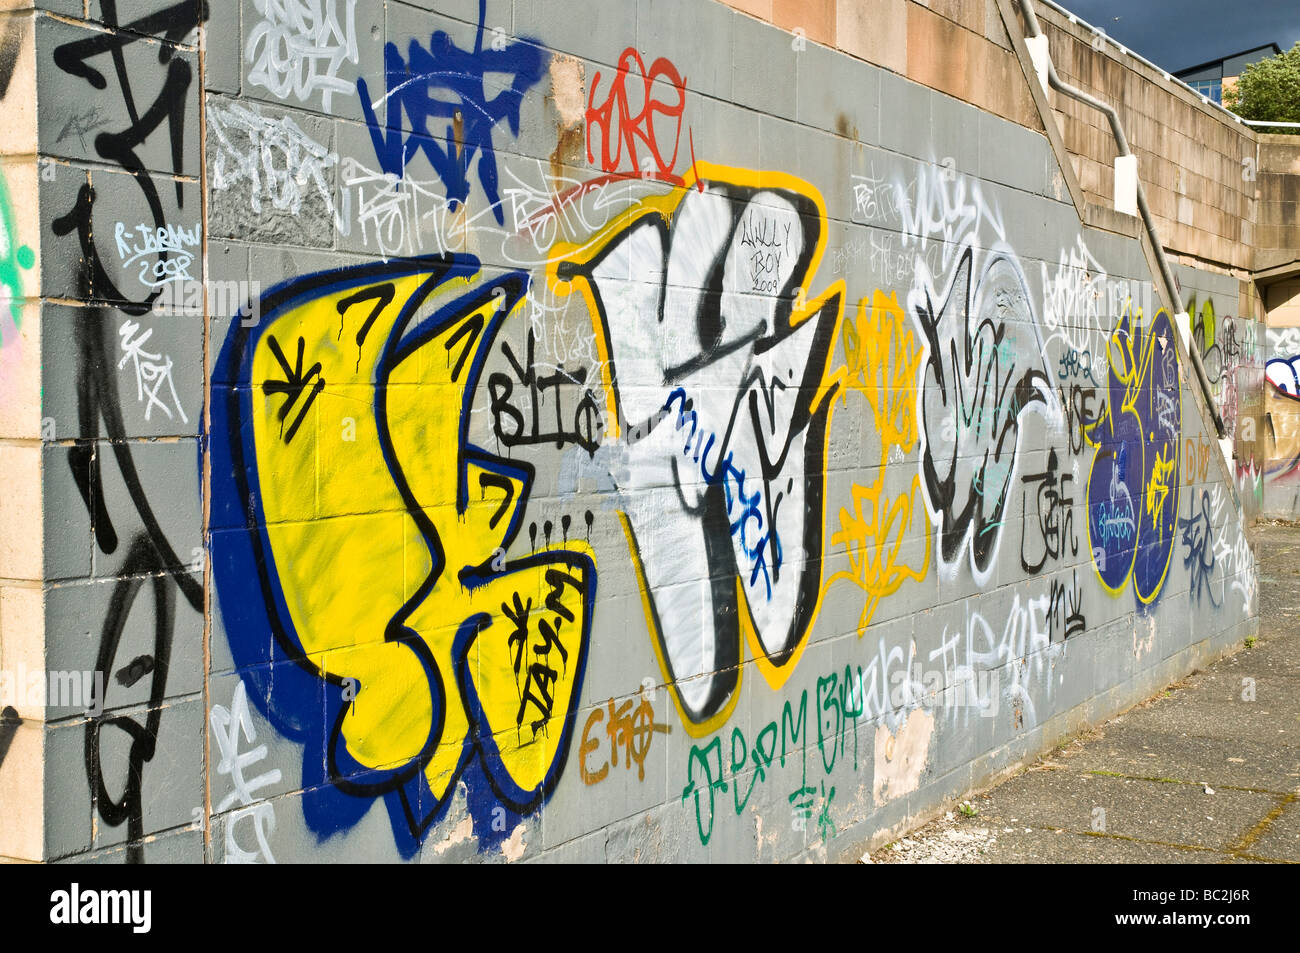 dh RIVER CLYDE GLASGOW Graffiti on walls of clyde embankment city uk ...